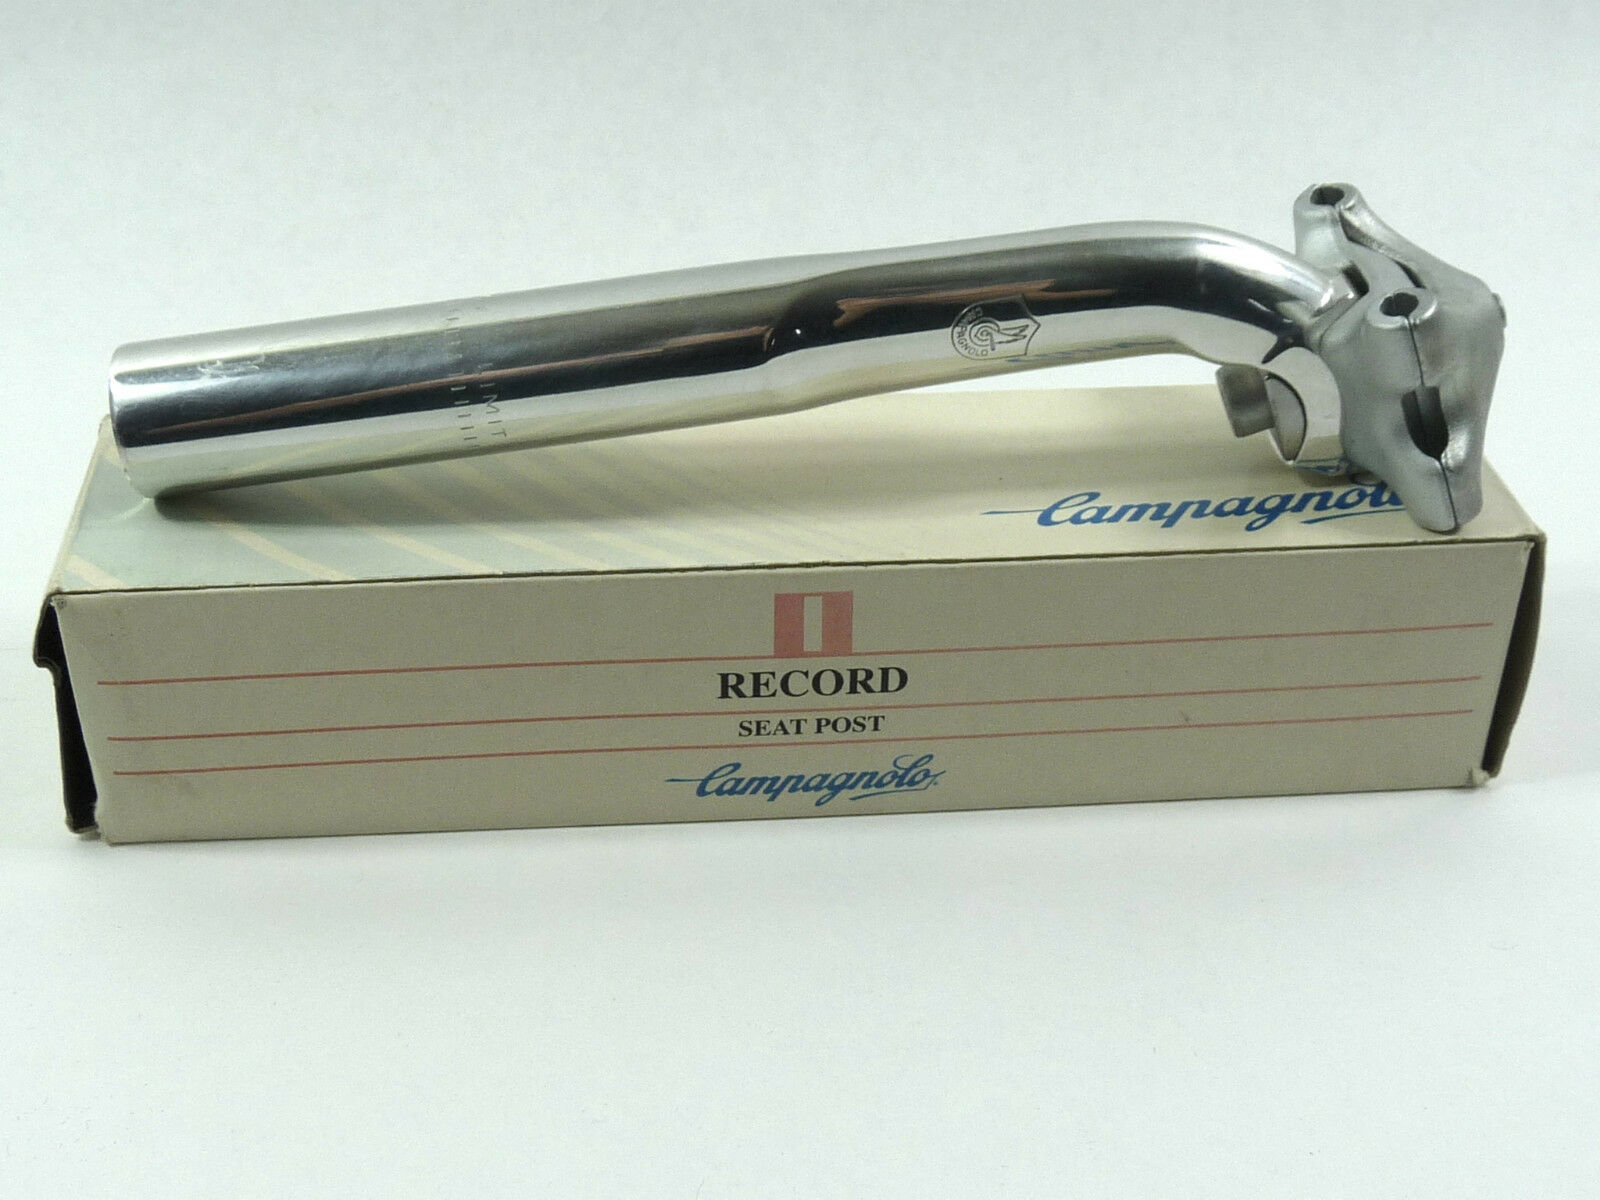 Campagnolo C Record seatpost 26.2 Vintage  road racing bicycle Fits Cinelli NOS  high discount